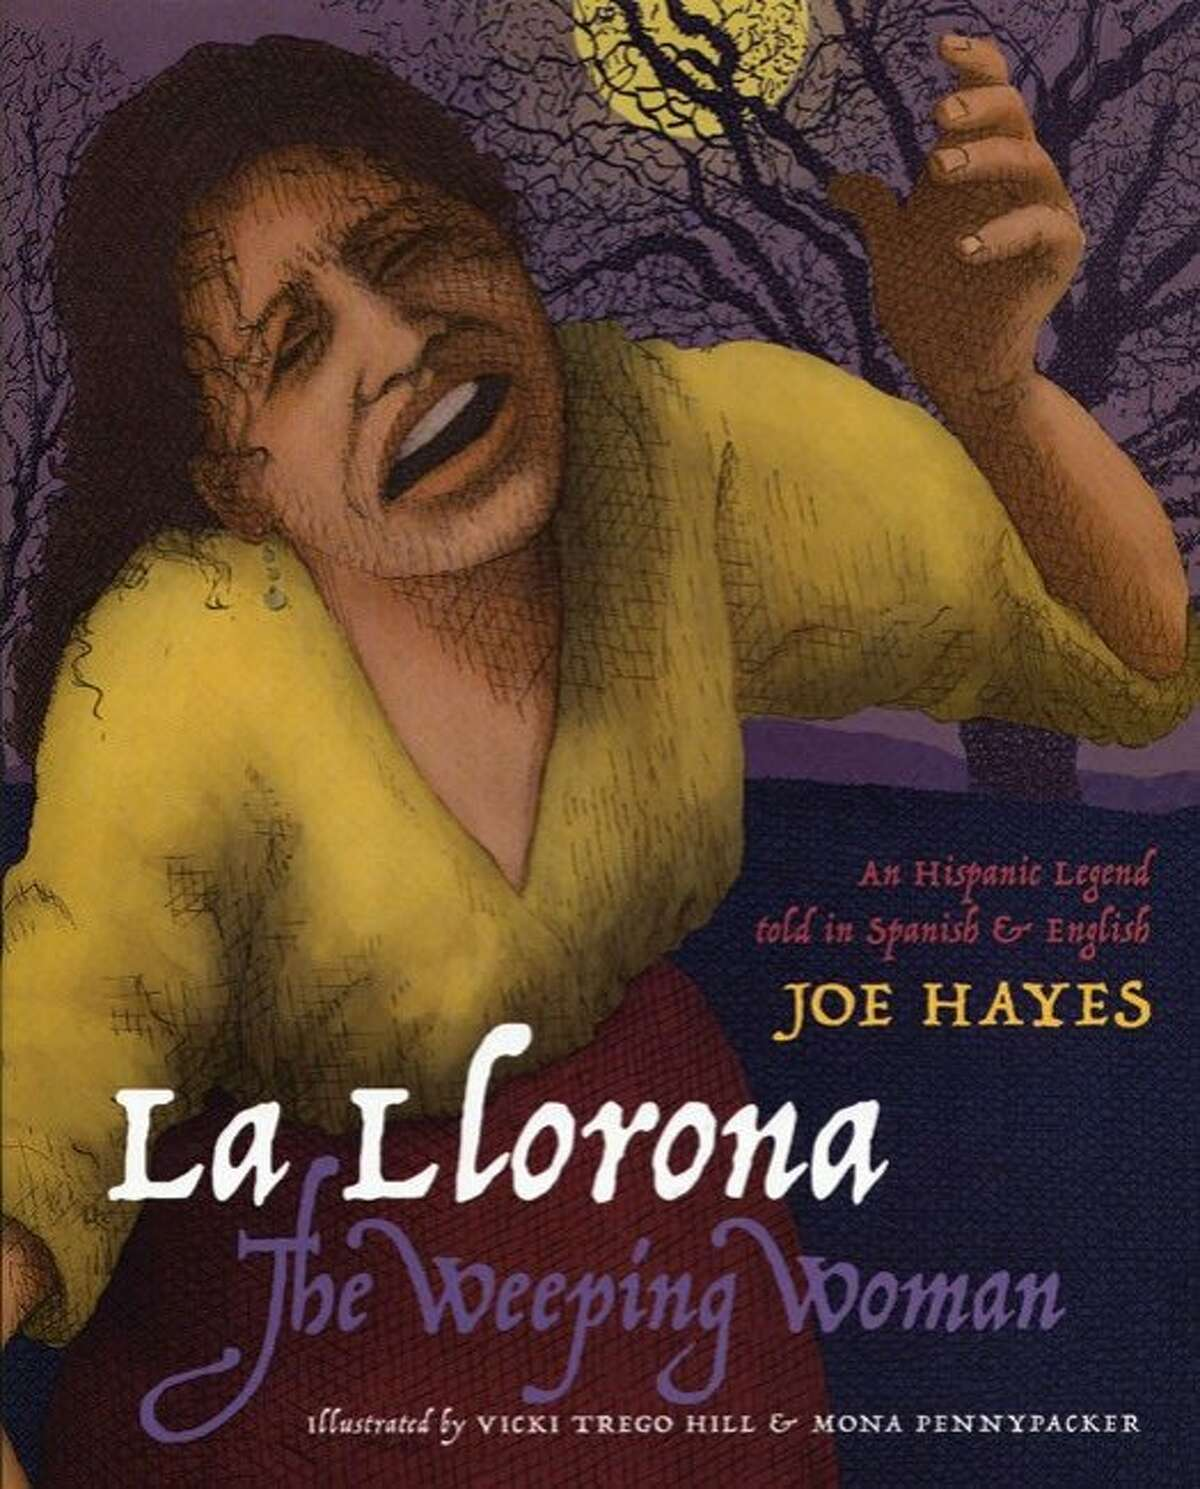 Joe Hayes, known for his bilingual retellings of stories from the American Southwest, does a good job of bringing La Llorona back to basics in his 2004 book,